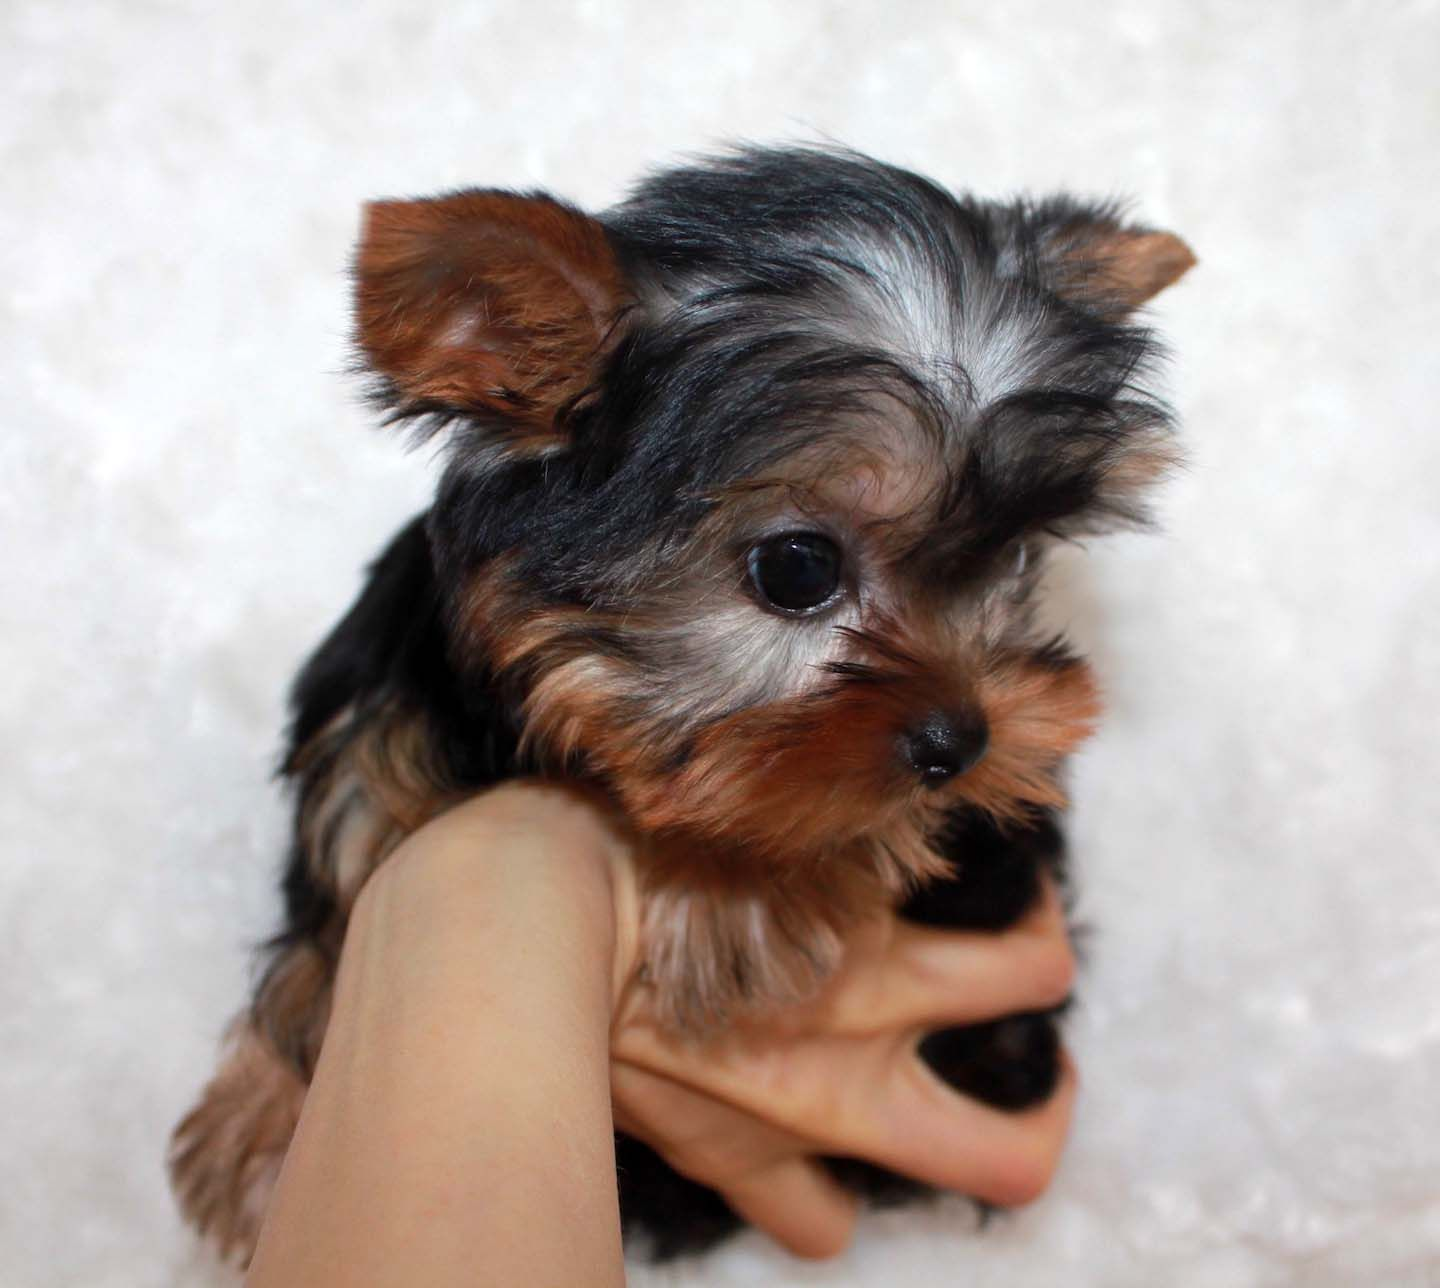 Micro Teacup Yorkie Puppy For Sale Iheartteacups Teacup Yorkie Puppy Teacup Yorkie Yorkie